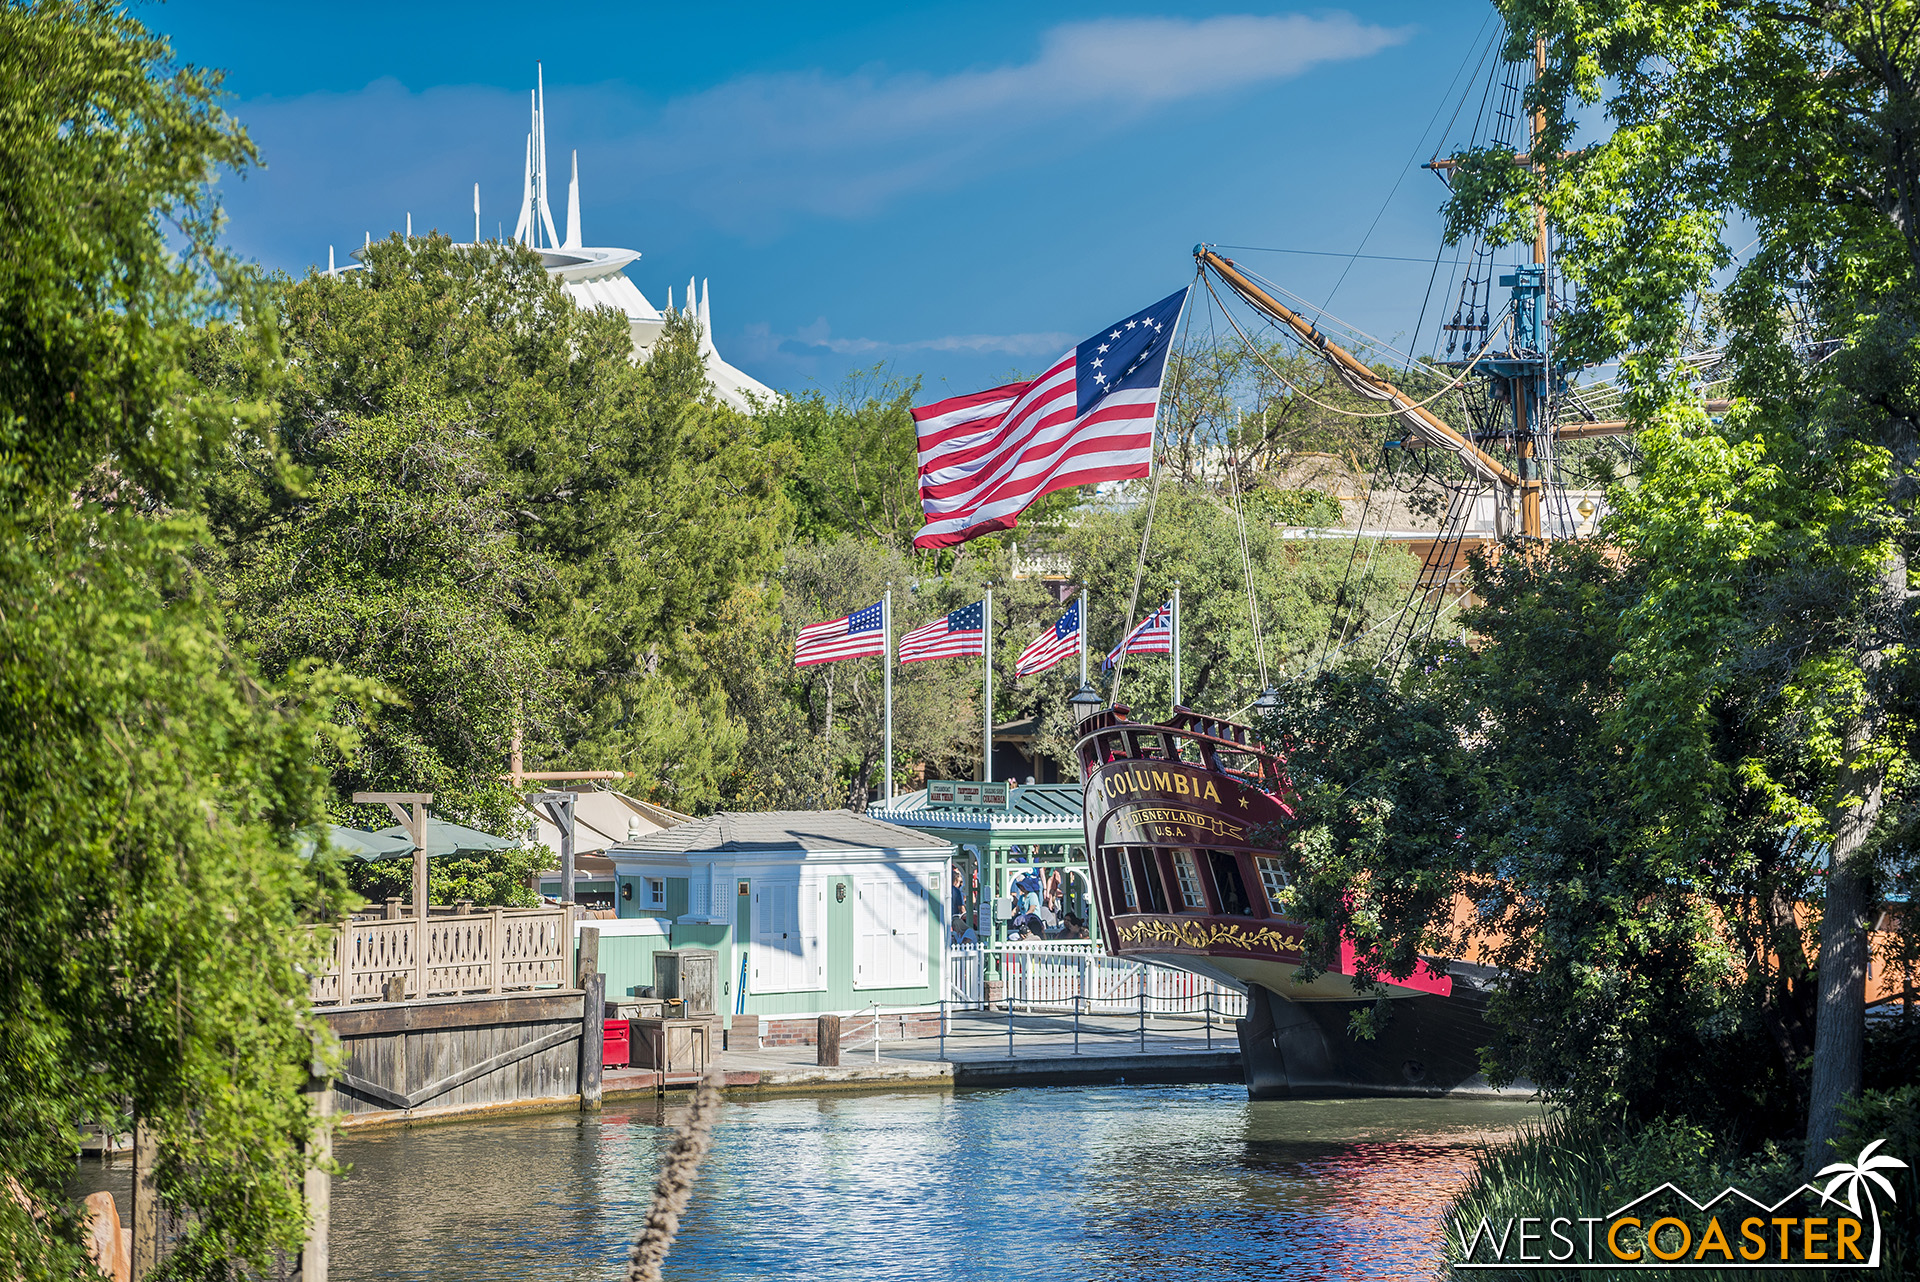 Also, a side note.  When the Disney community found out that the Rivers of America were going to be shortened to make some room for Galaxy's Edge, the sensationalists practically tried to start a rebellion with their outrage.  This would ruin the Rivers of America!   They were cutting it by 1/3 or even in half!  Well, they ended up lopping off more like a quarter of the route, and it still looks great.  But every once in a while, the ship loading backs up, and then you actually do notice that the trip is shorter than it used to be…